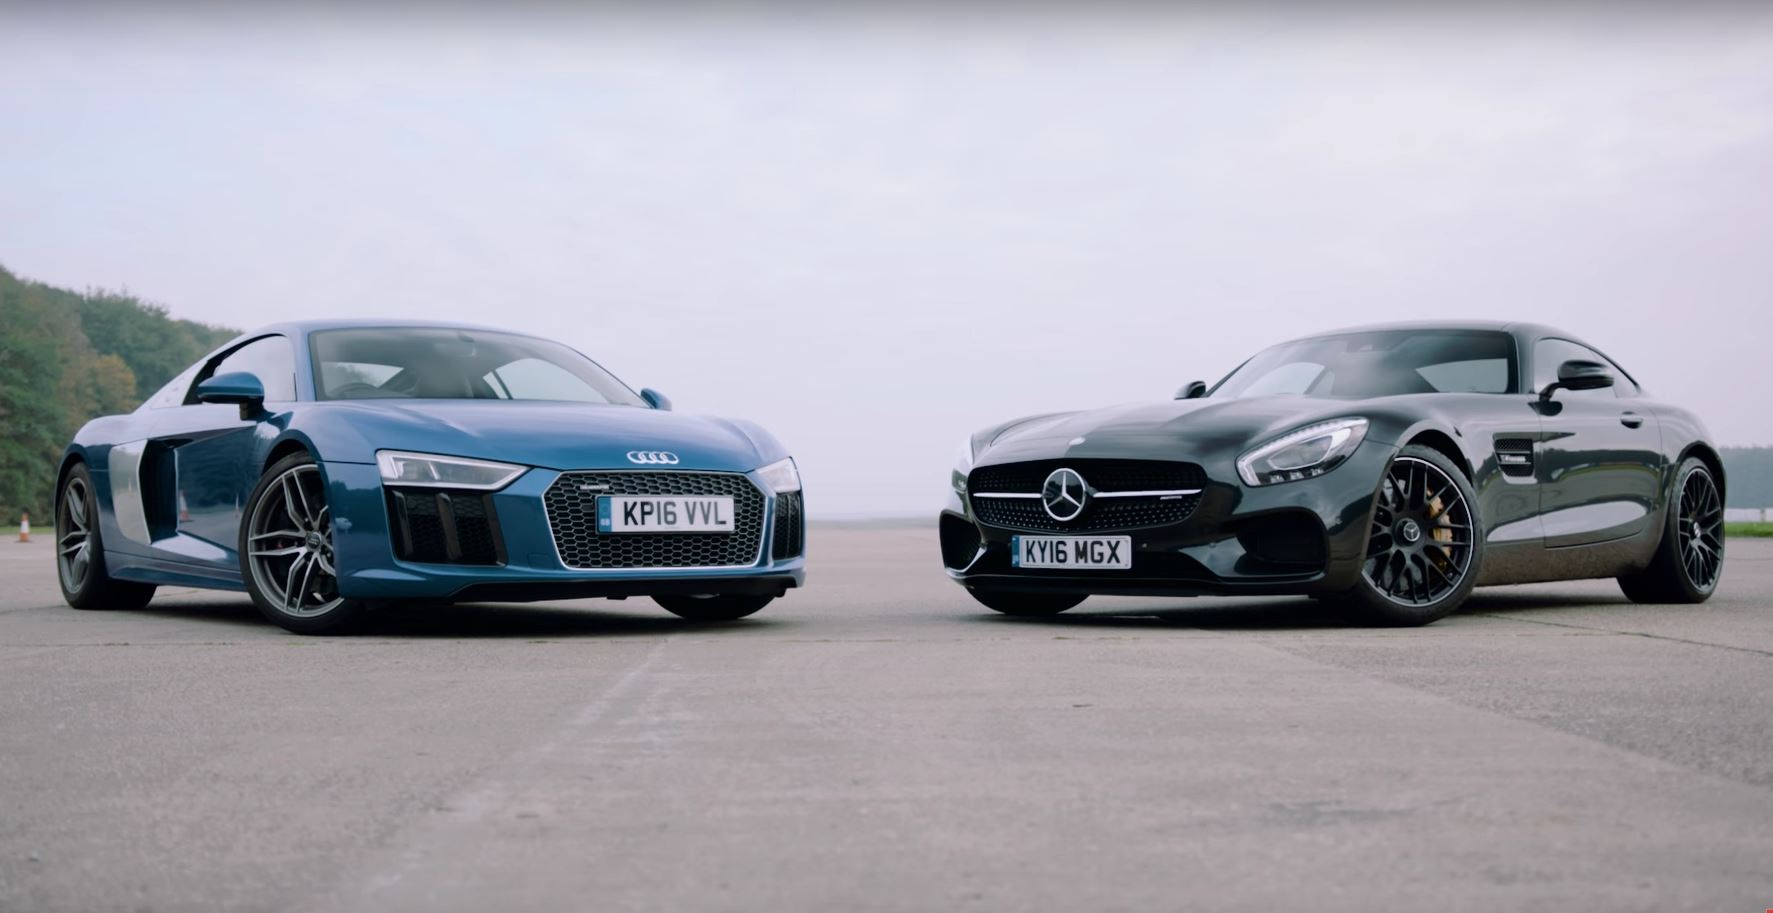 2017 Audi R8 V10 Vs Mercedes Amg Gt S Drag Race Ends With